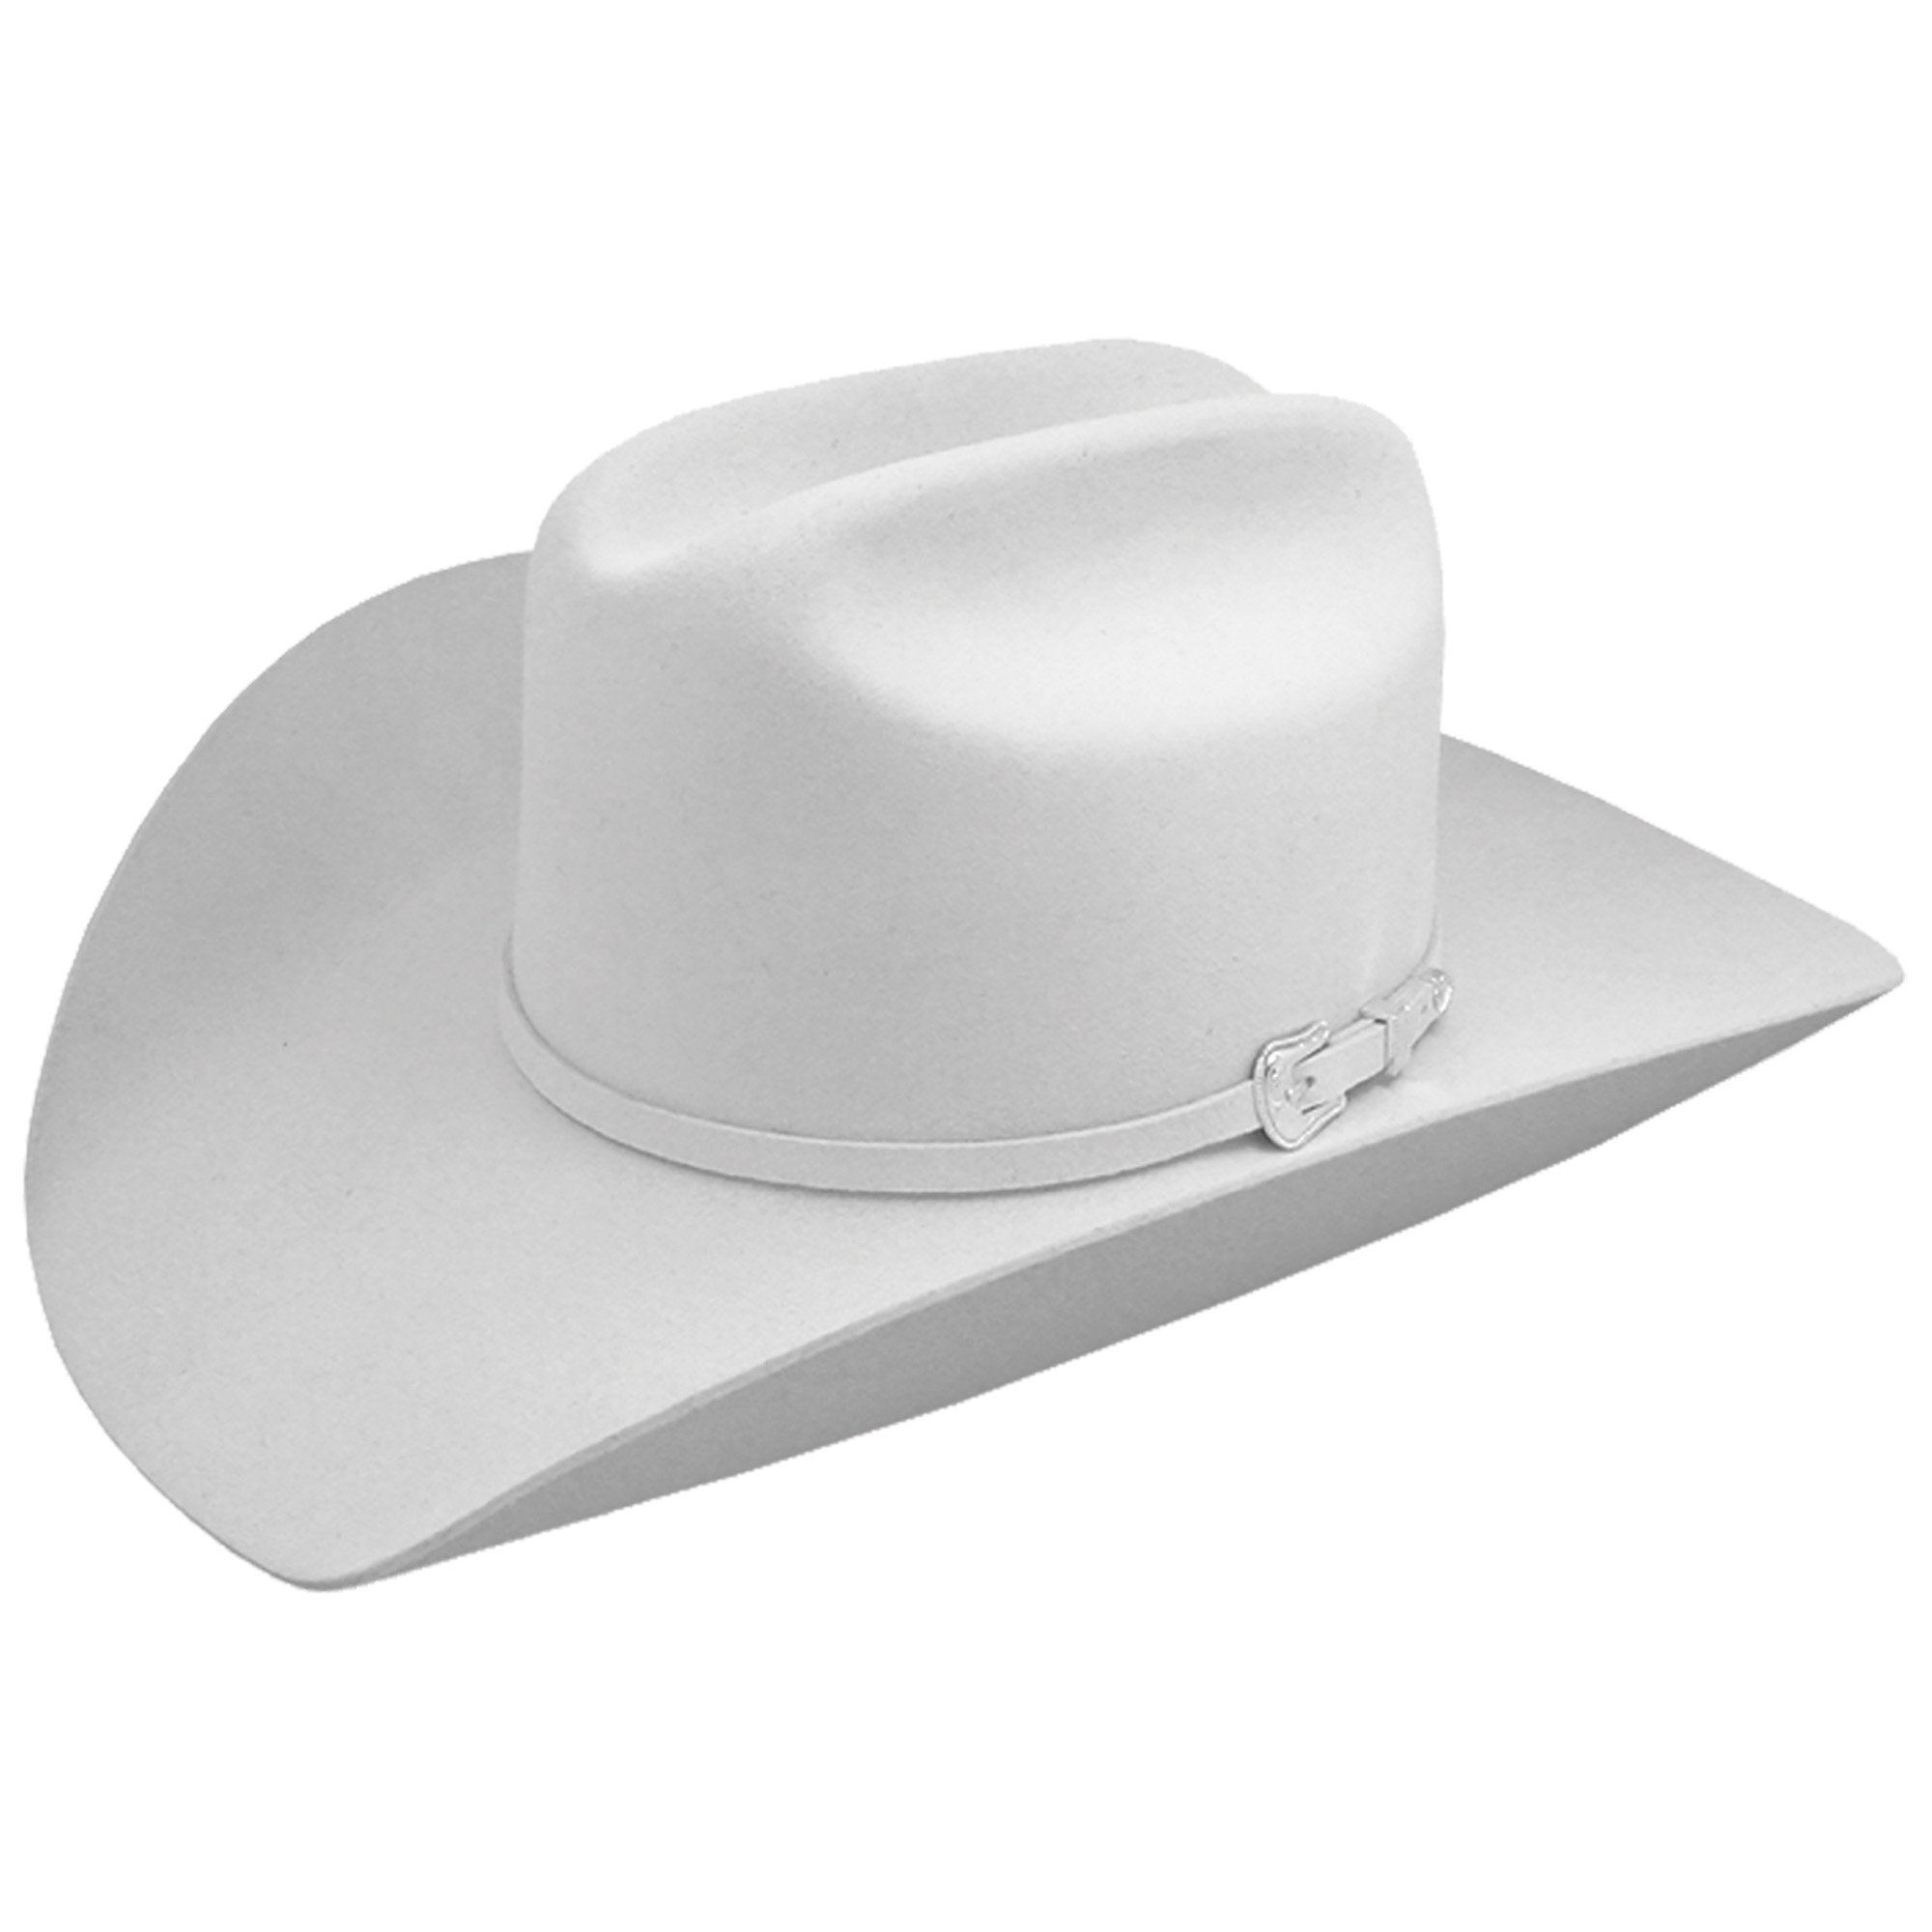 dating resistol hats Resistol, the largest manufacturer of hats in the world, for men and women, in straw, felt, leather or cloth choose from the highest quality in fedoras and cowboy hats to touring caps and panama hats.